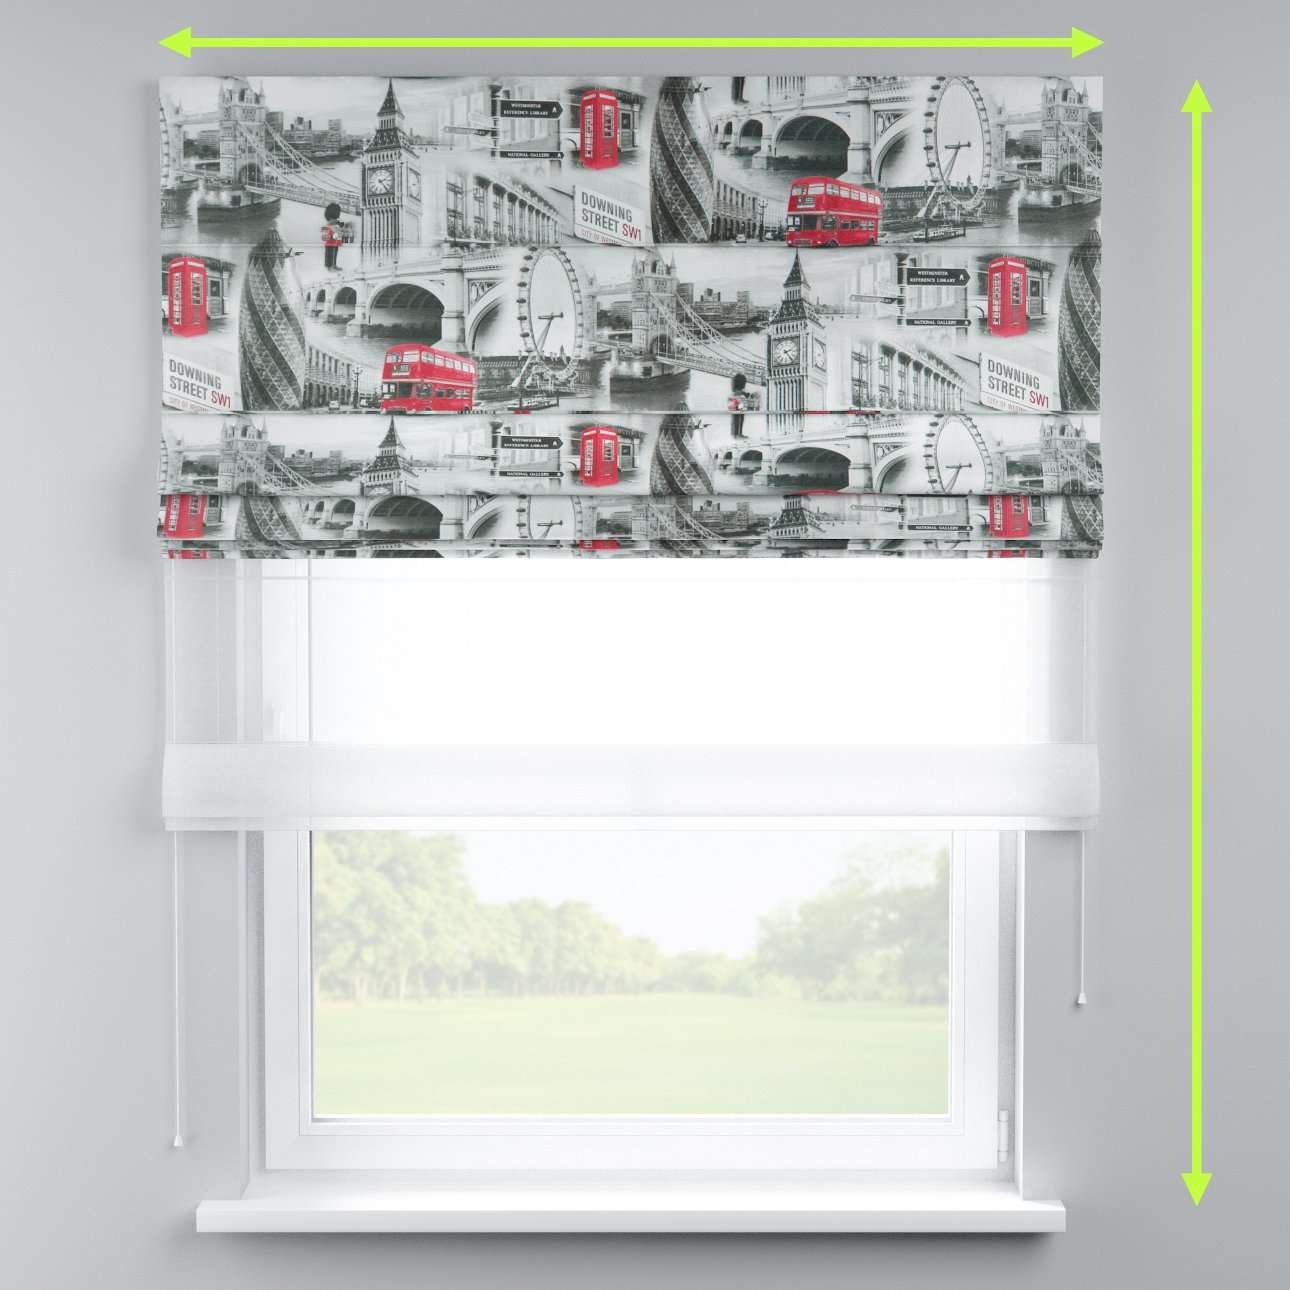 Voile and fabric roman blind (DUO II) in collection Comic Book & Geo Prints, fabric: 111-04